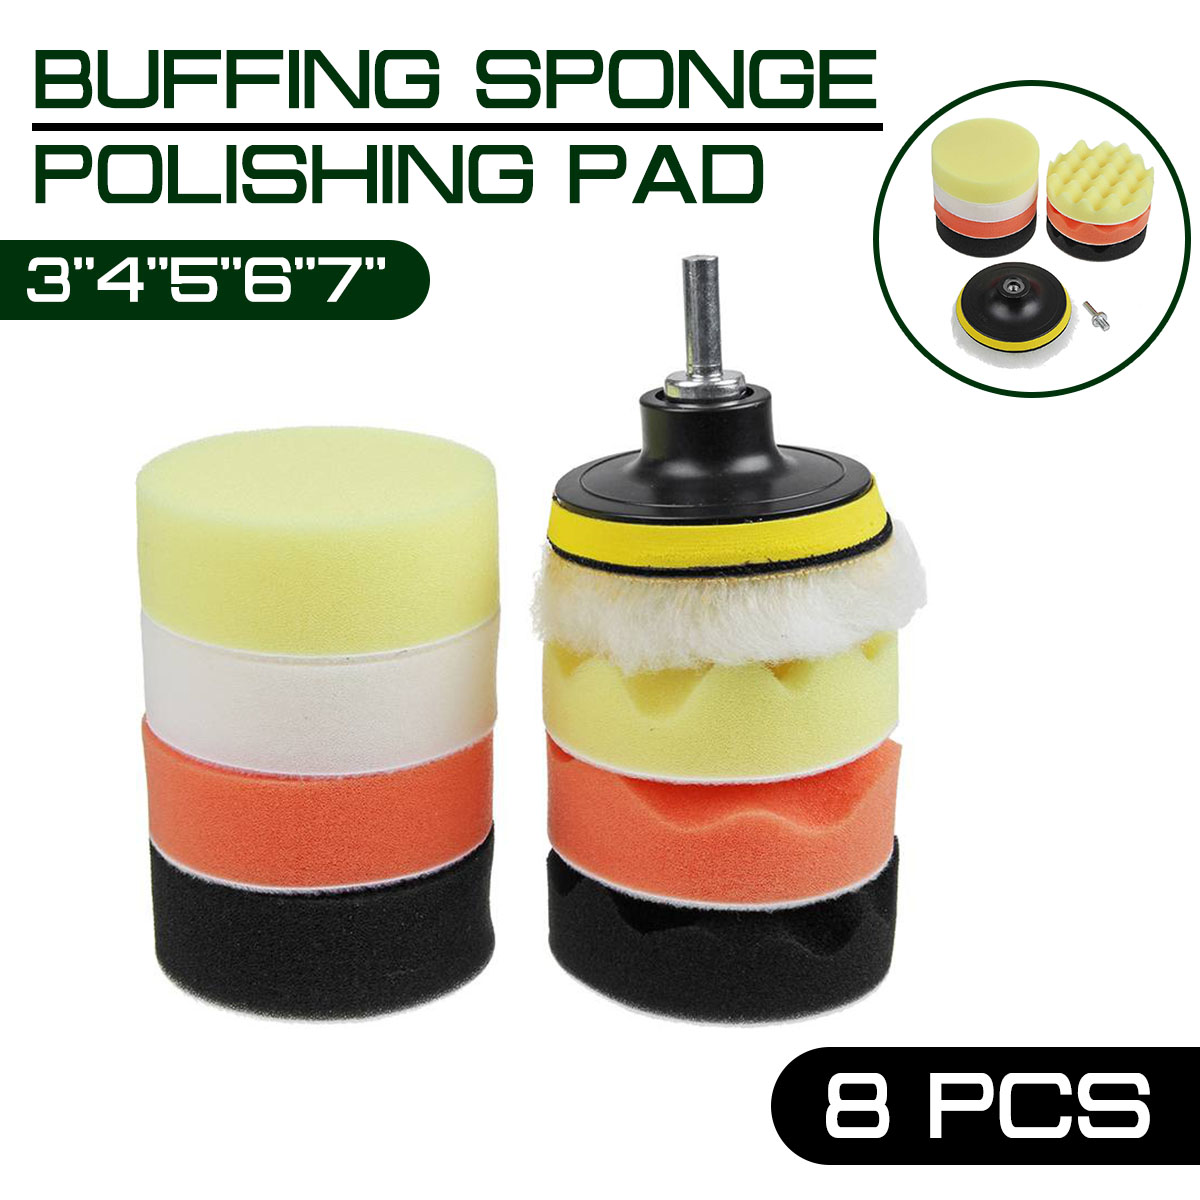 3''4''5''6''7'' 10pcs Buffing Sponge Polishing Pad Hand Tool Kit For Car Polisher Compound Polishing